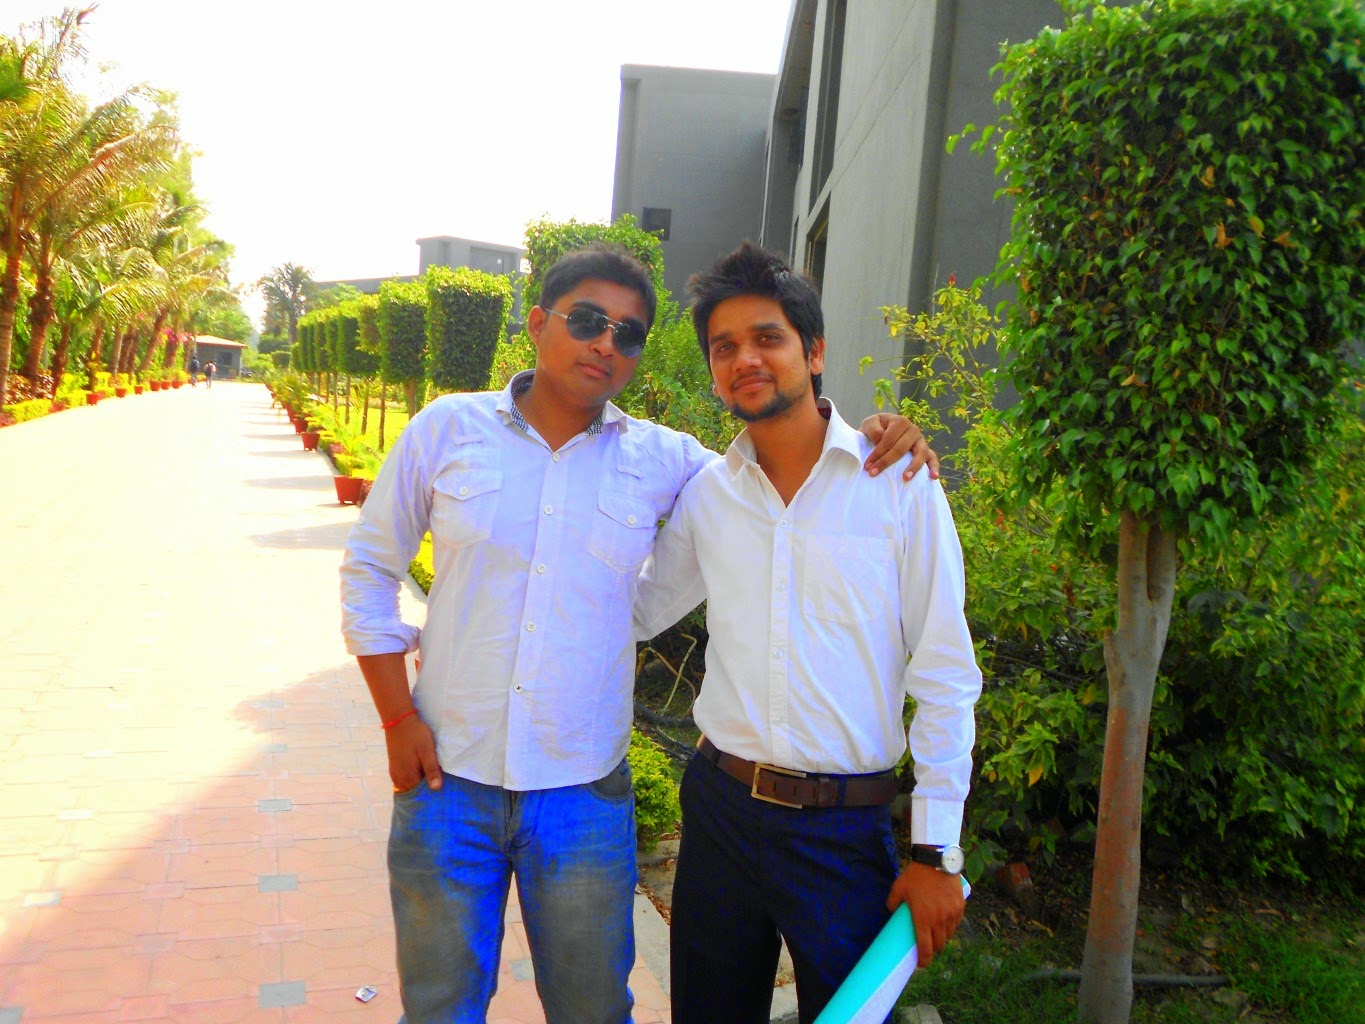 ucer, united college of engineering and research, allahabad, naini, united group of institutions, ugi, students, college friends, engineering students, college campus, ground, cool engineering students